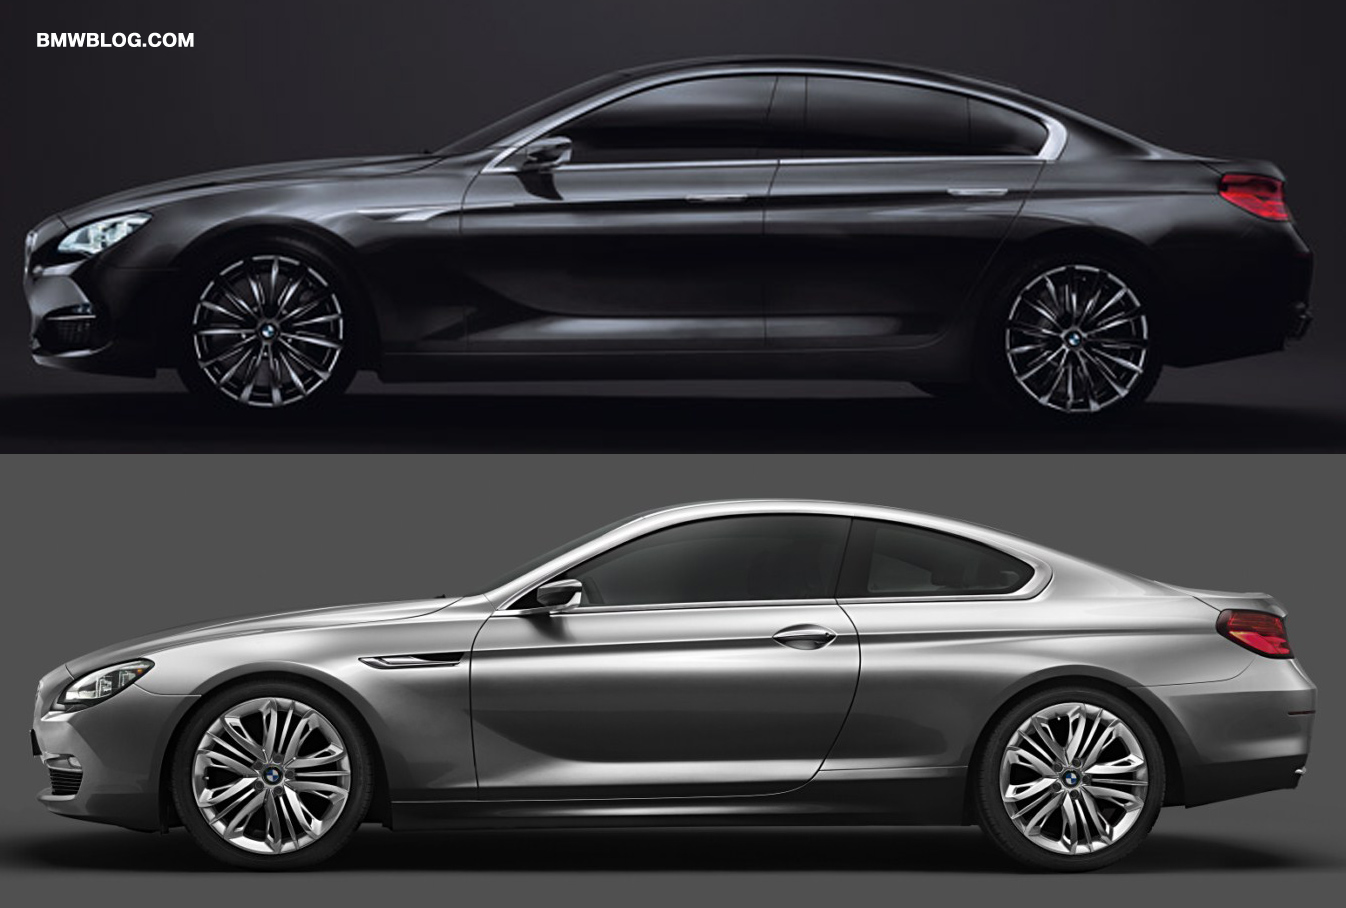 bmw 6 series coupe #7